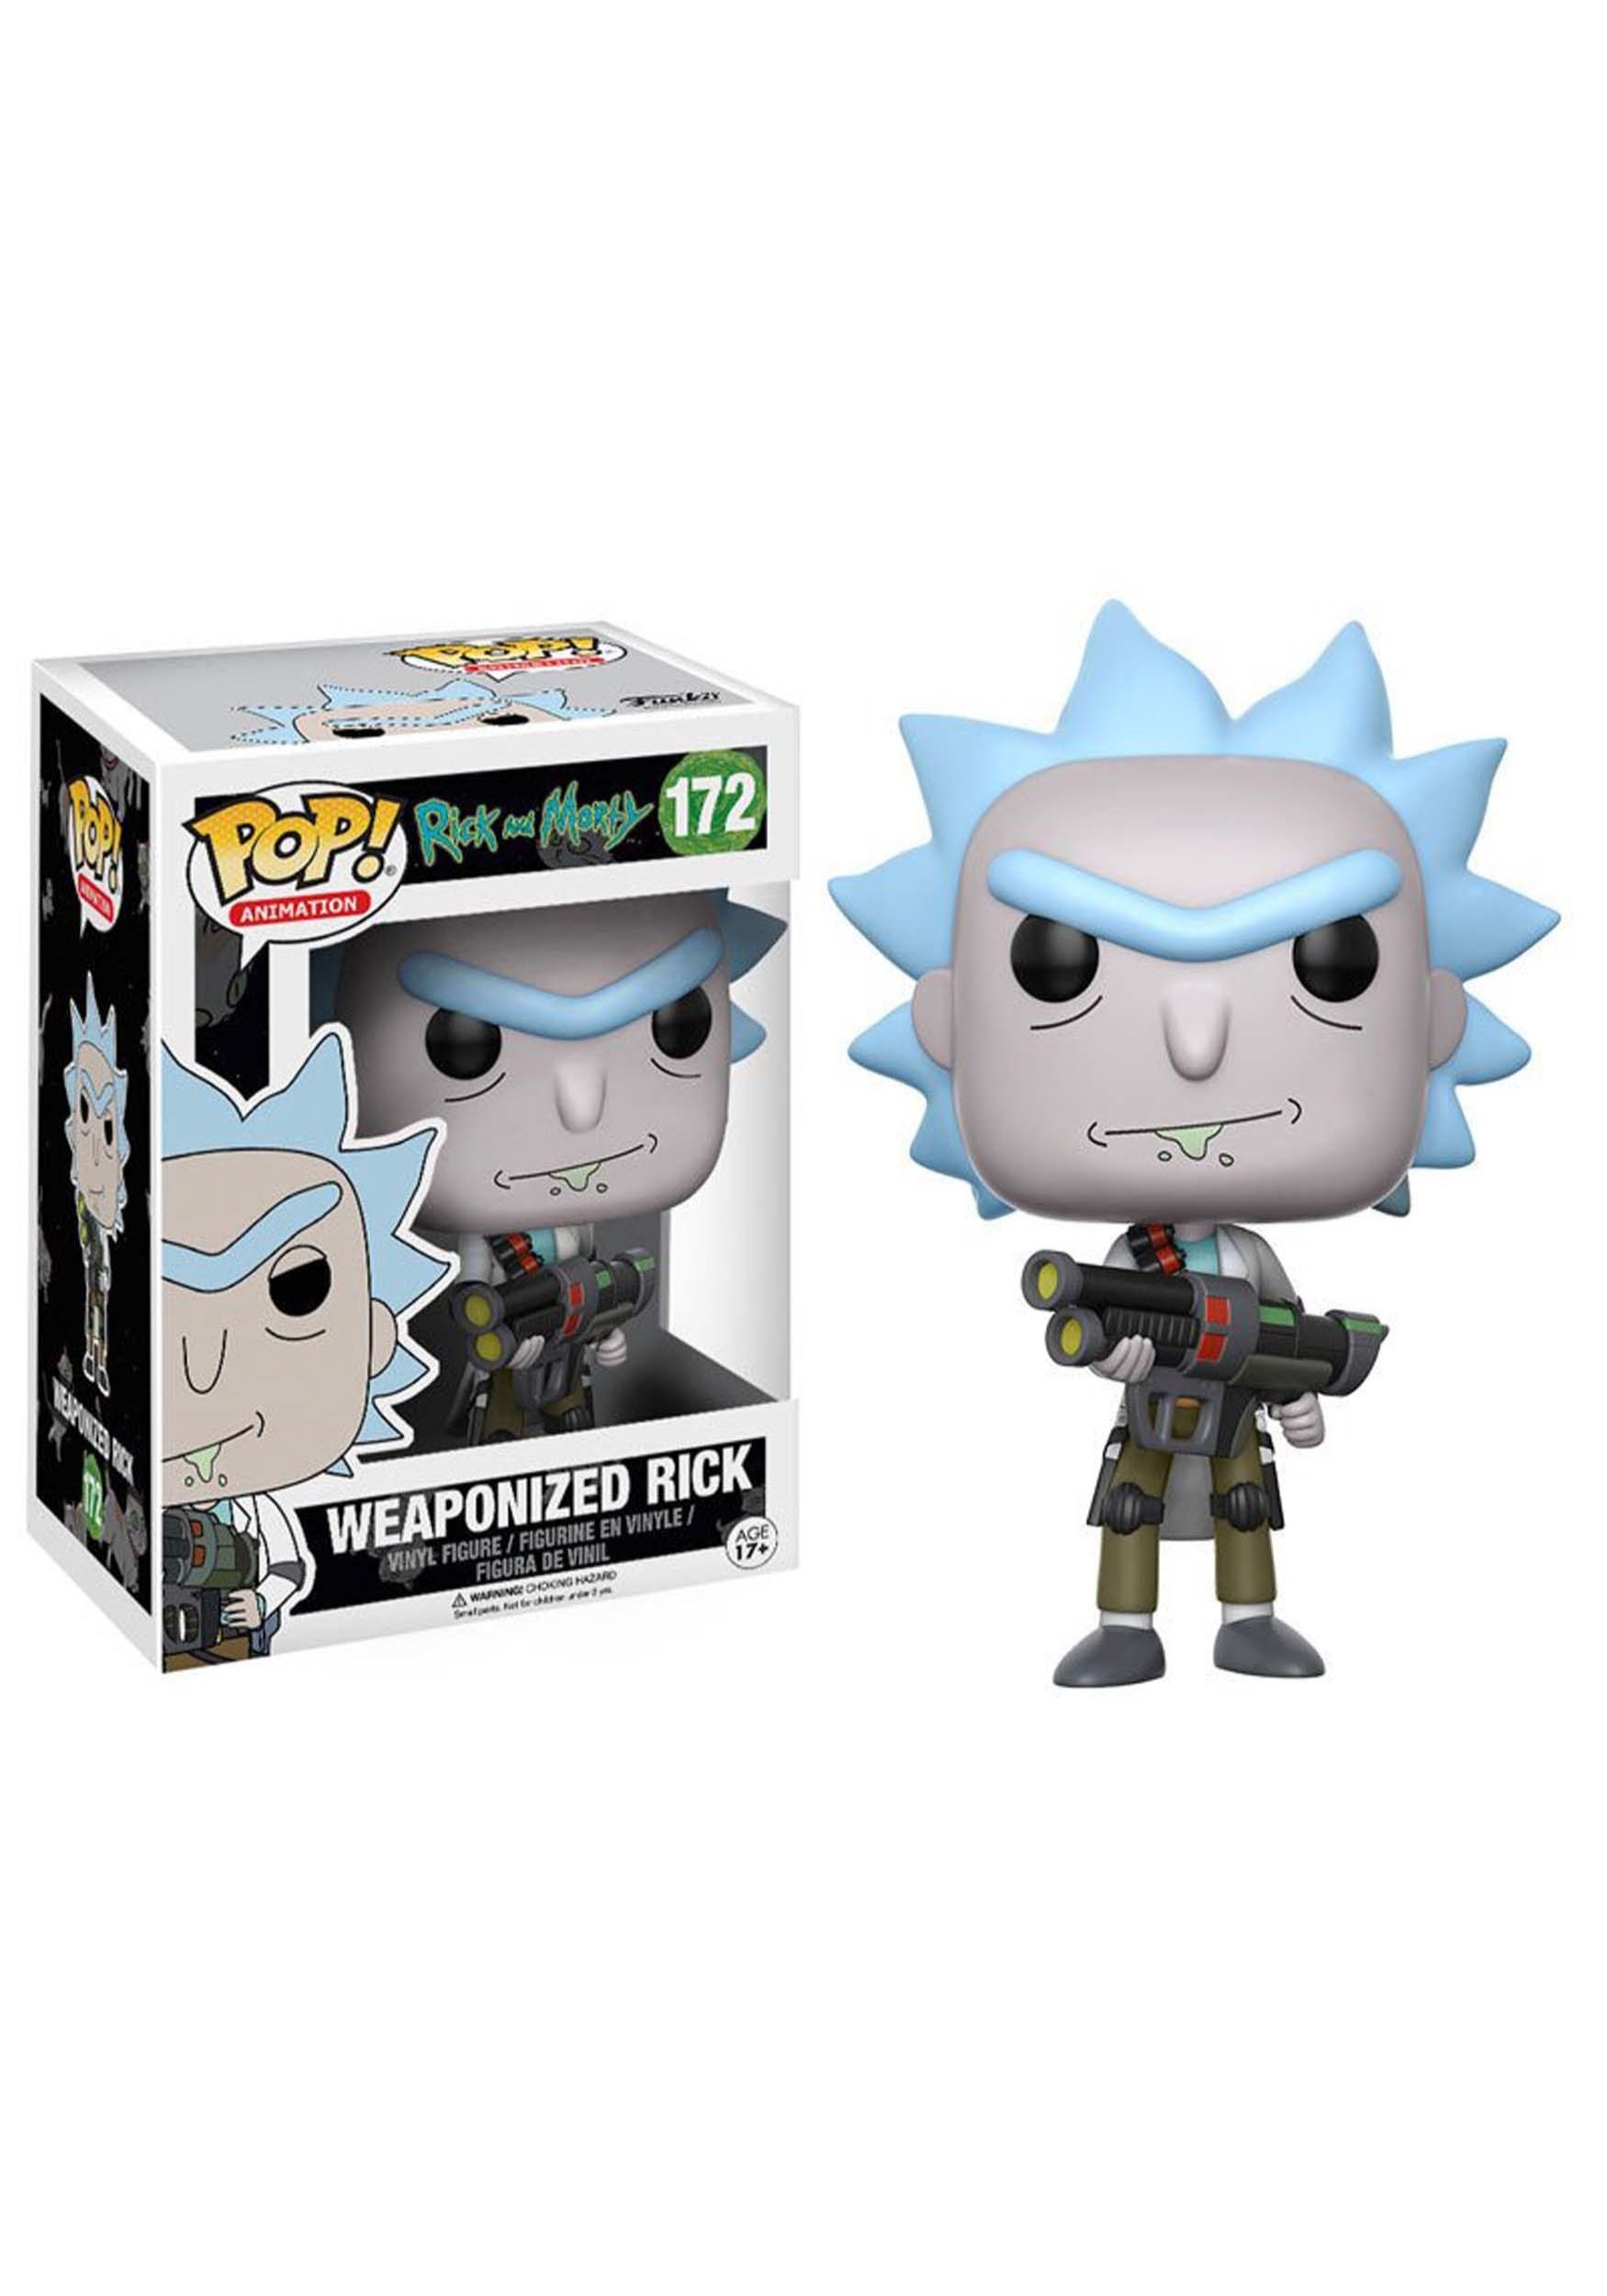 Rick and Morty Weaponized Rick POP! Vinyl Figure FN12439